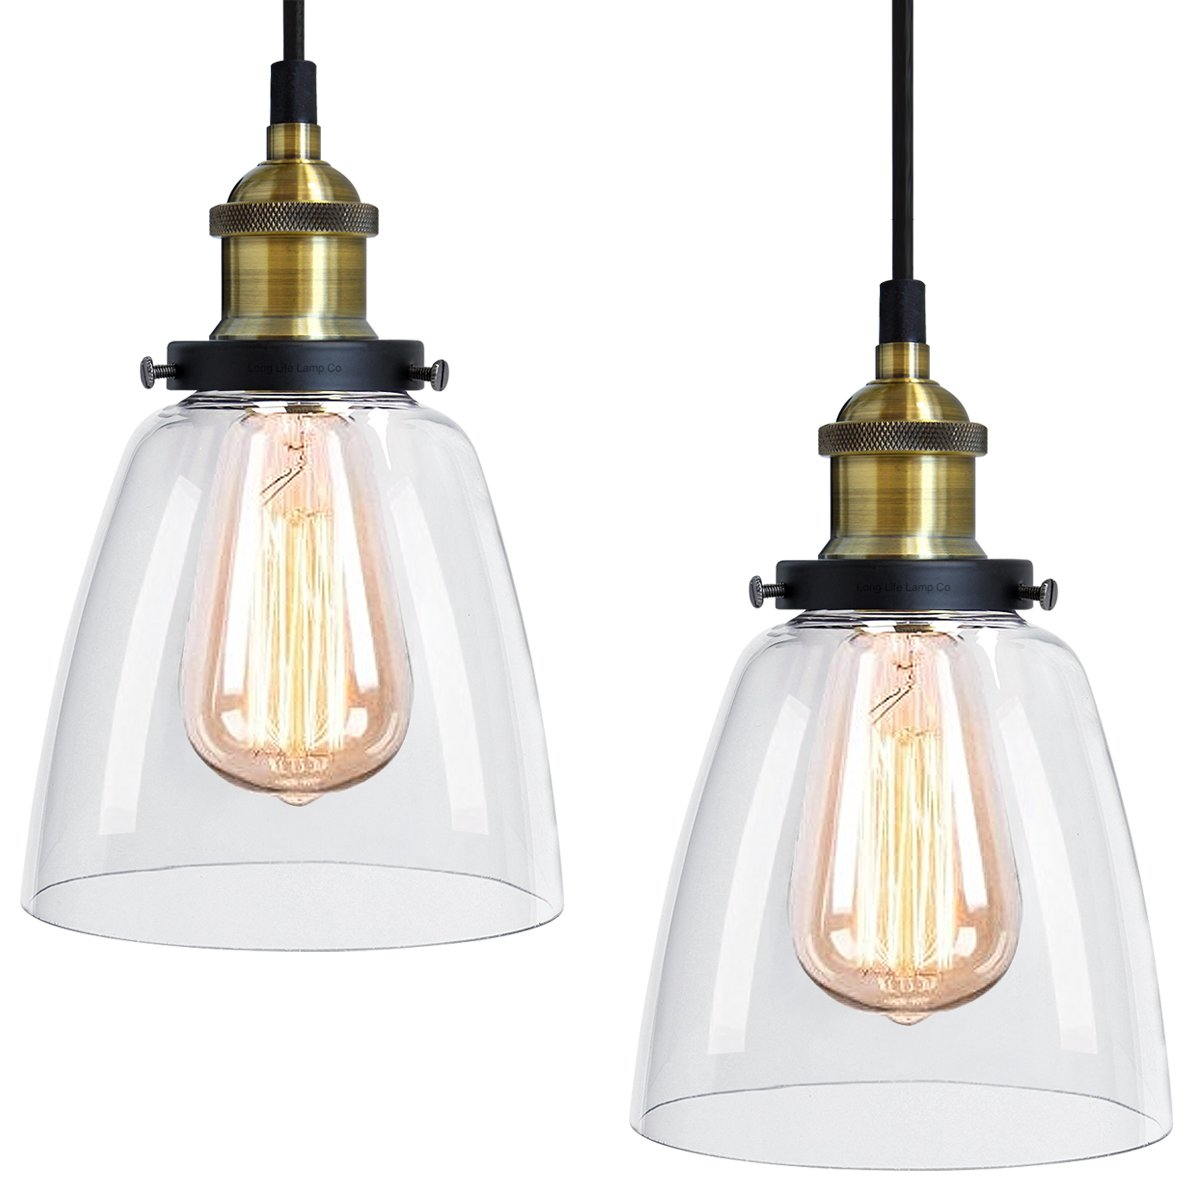 2 x Modern Vintage Victorian Bronze Metal Ceiling Pendant Glass Lamp Shade Chandelier BF-4 Long Life Lamp Company